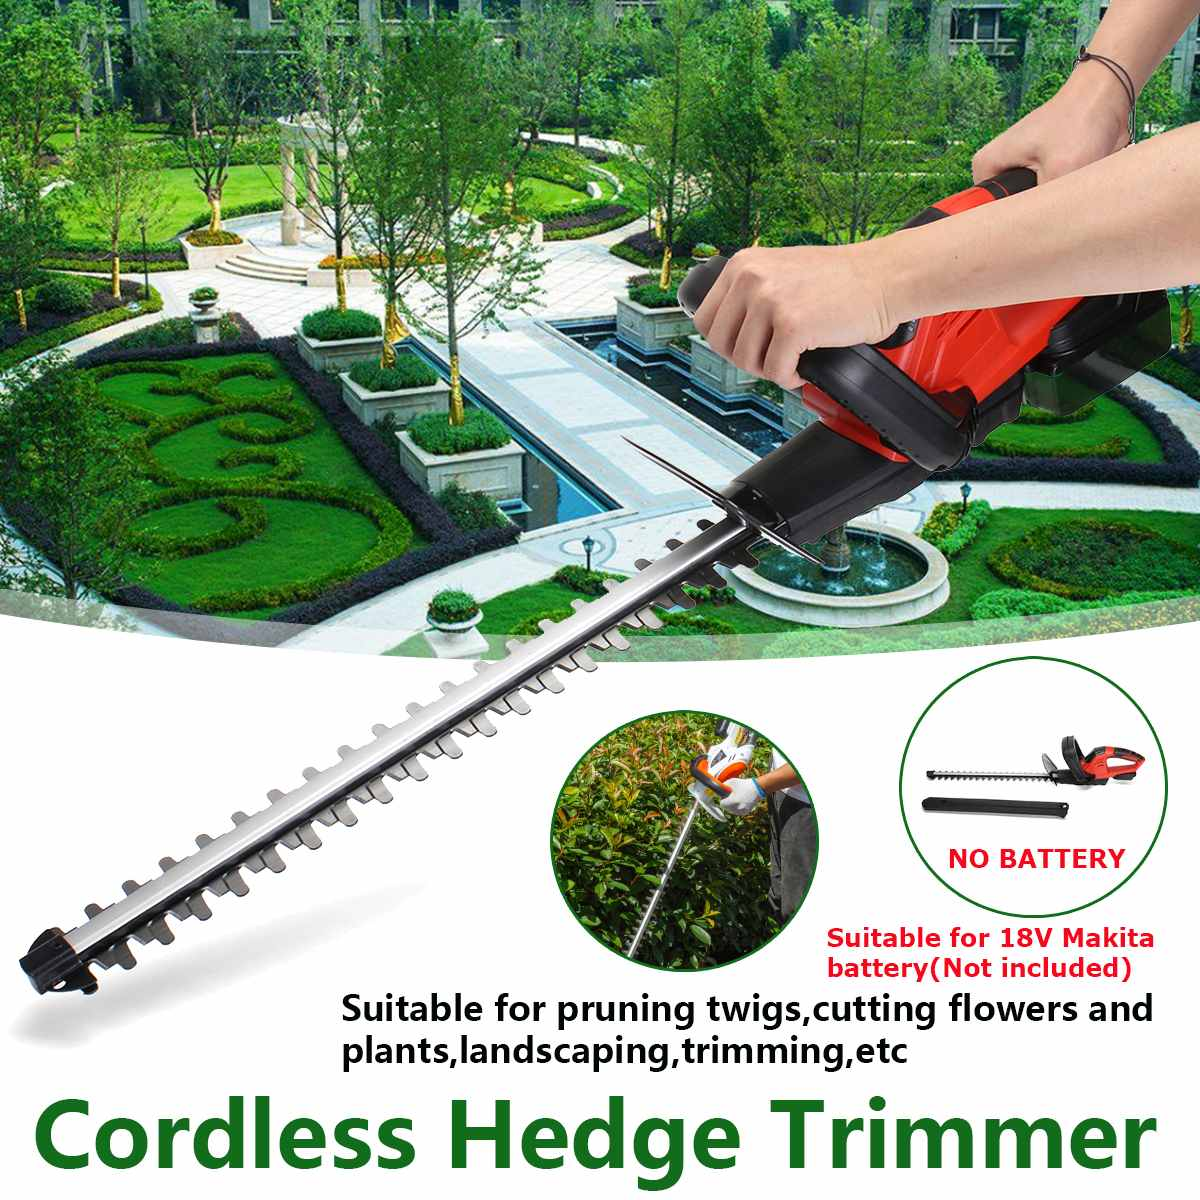 21V Electric Cordless Household Trimmer Hedge Trimmer For 18V Makita battery Electric Trimmer Pruning Saw Garden Tools   Blade